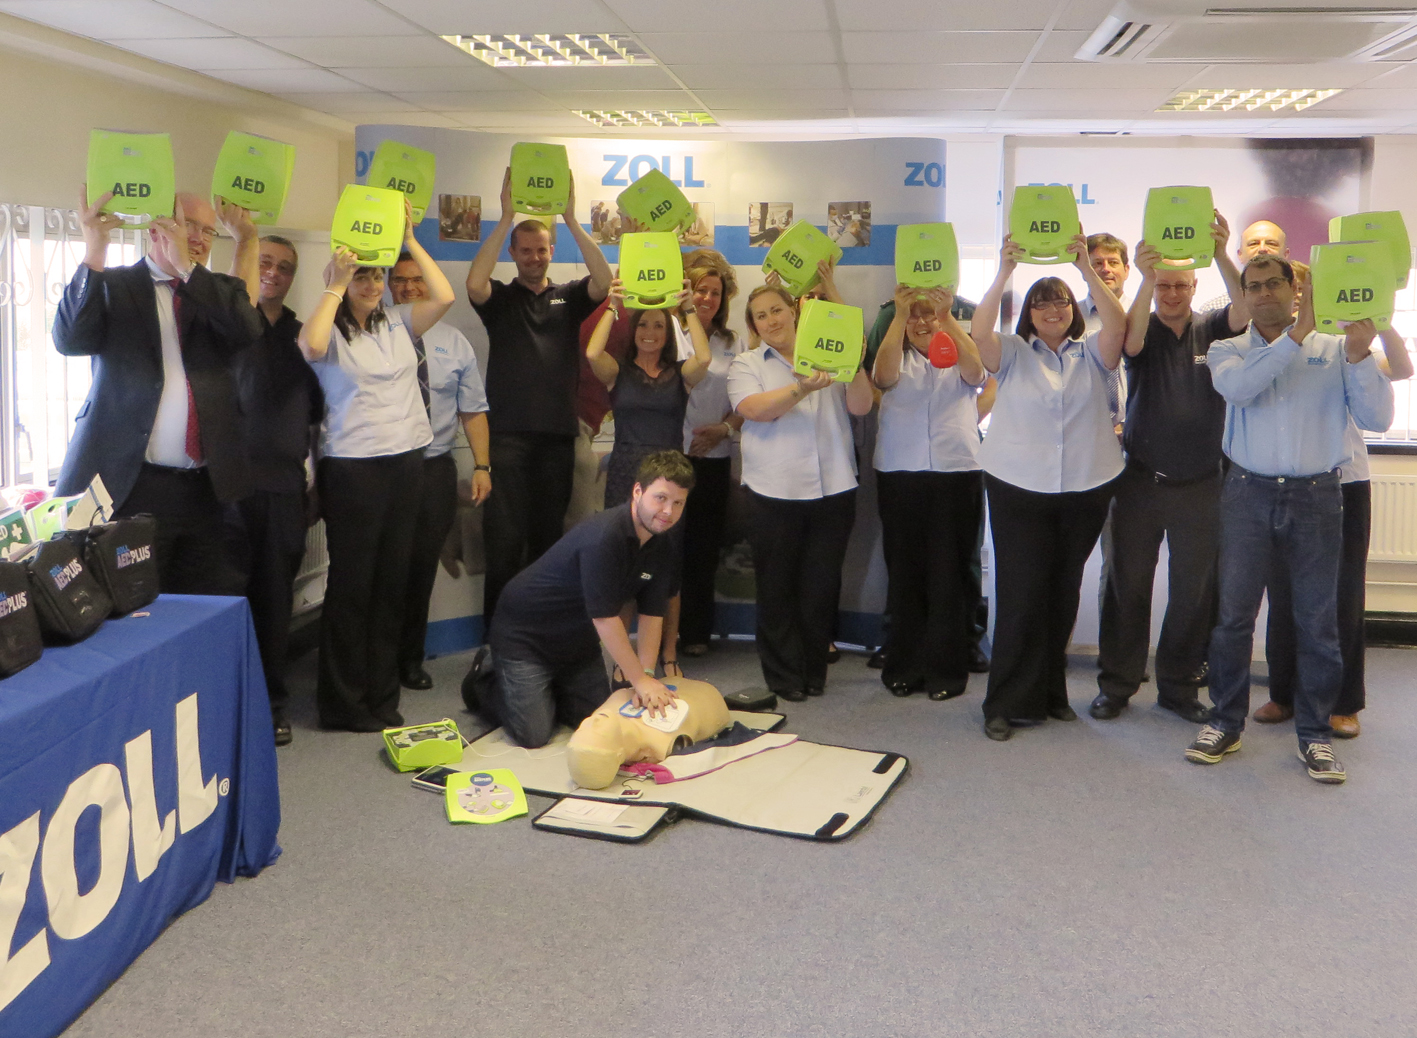 ZOLL Staff AED Program 2